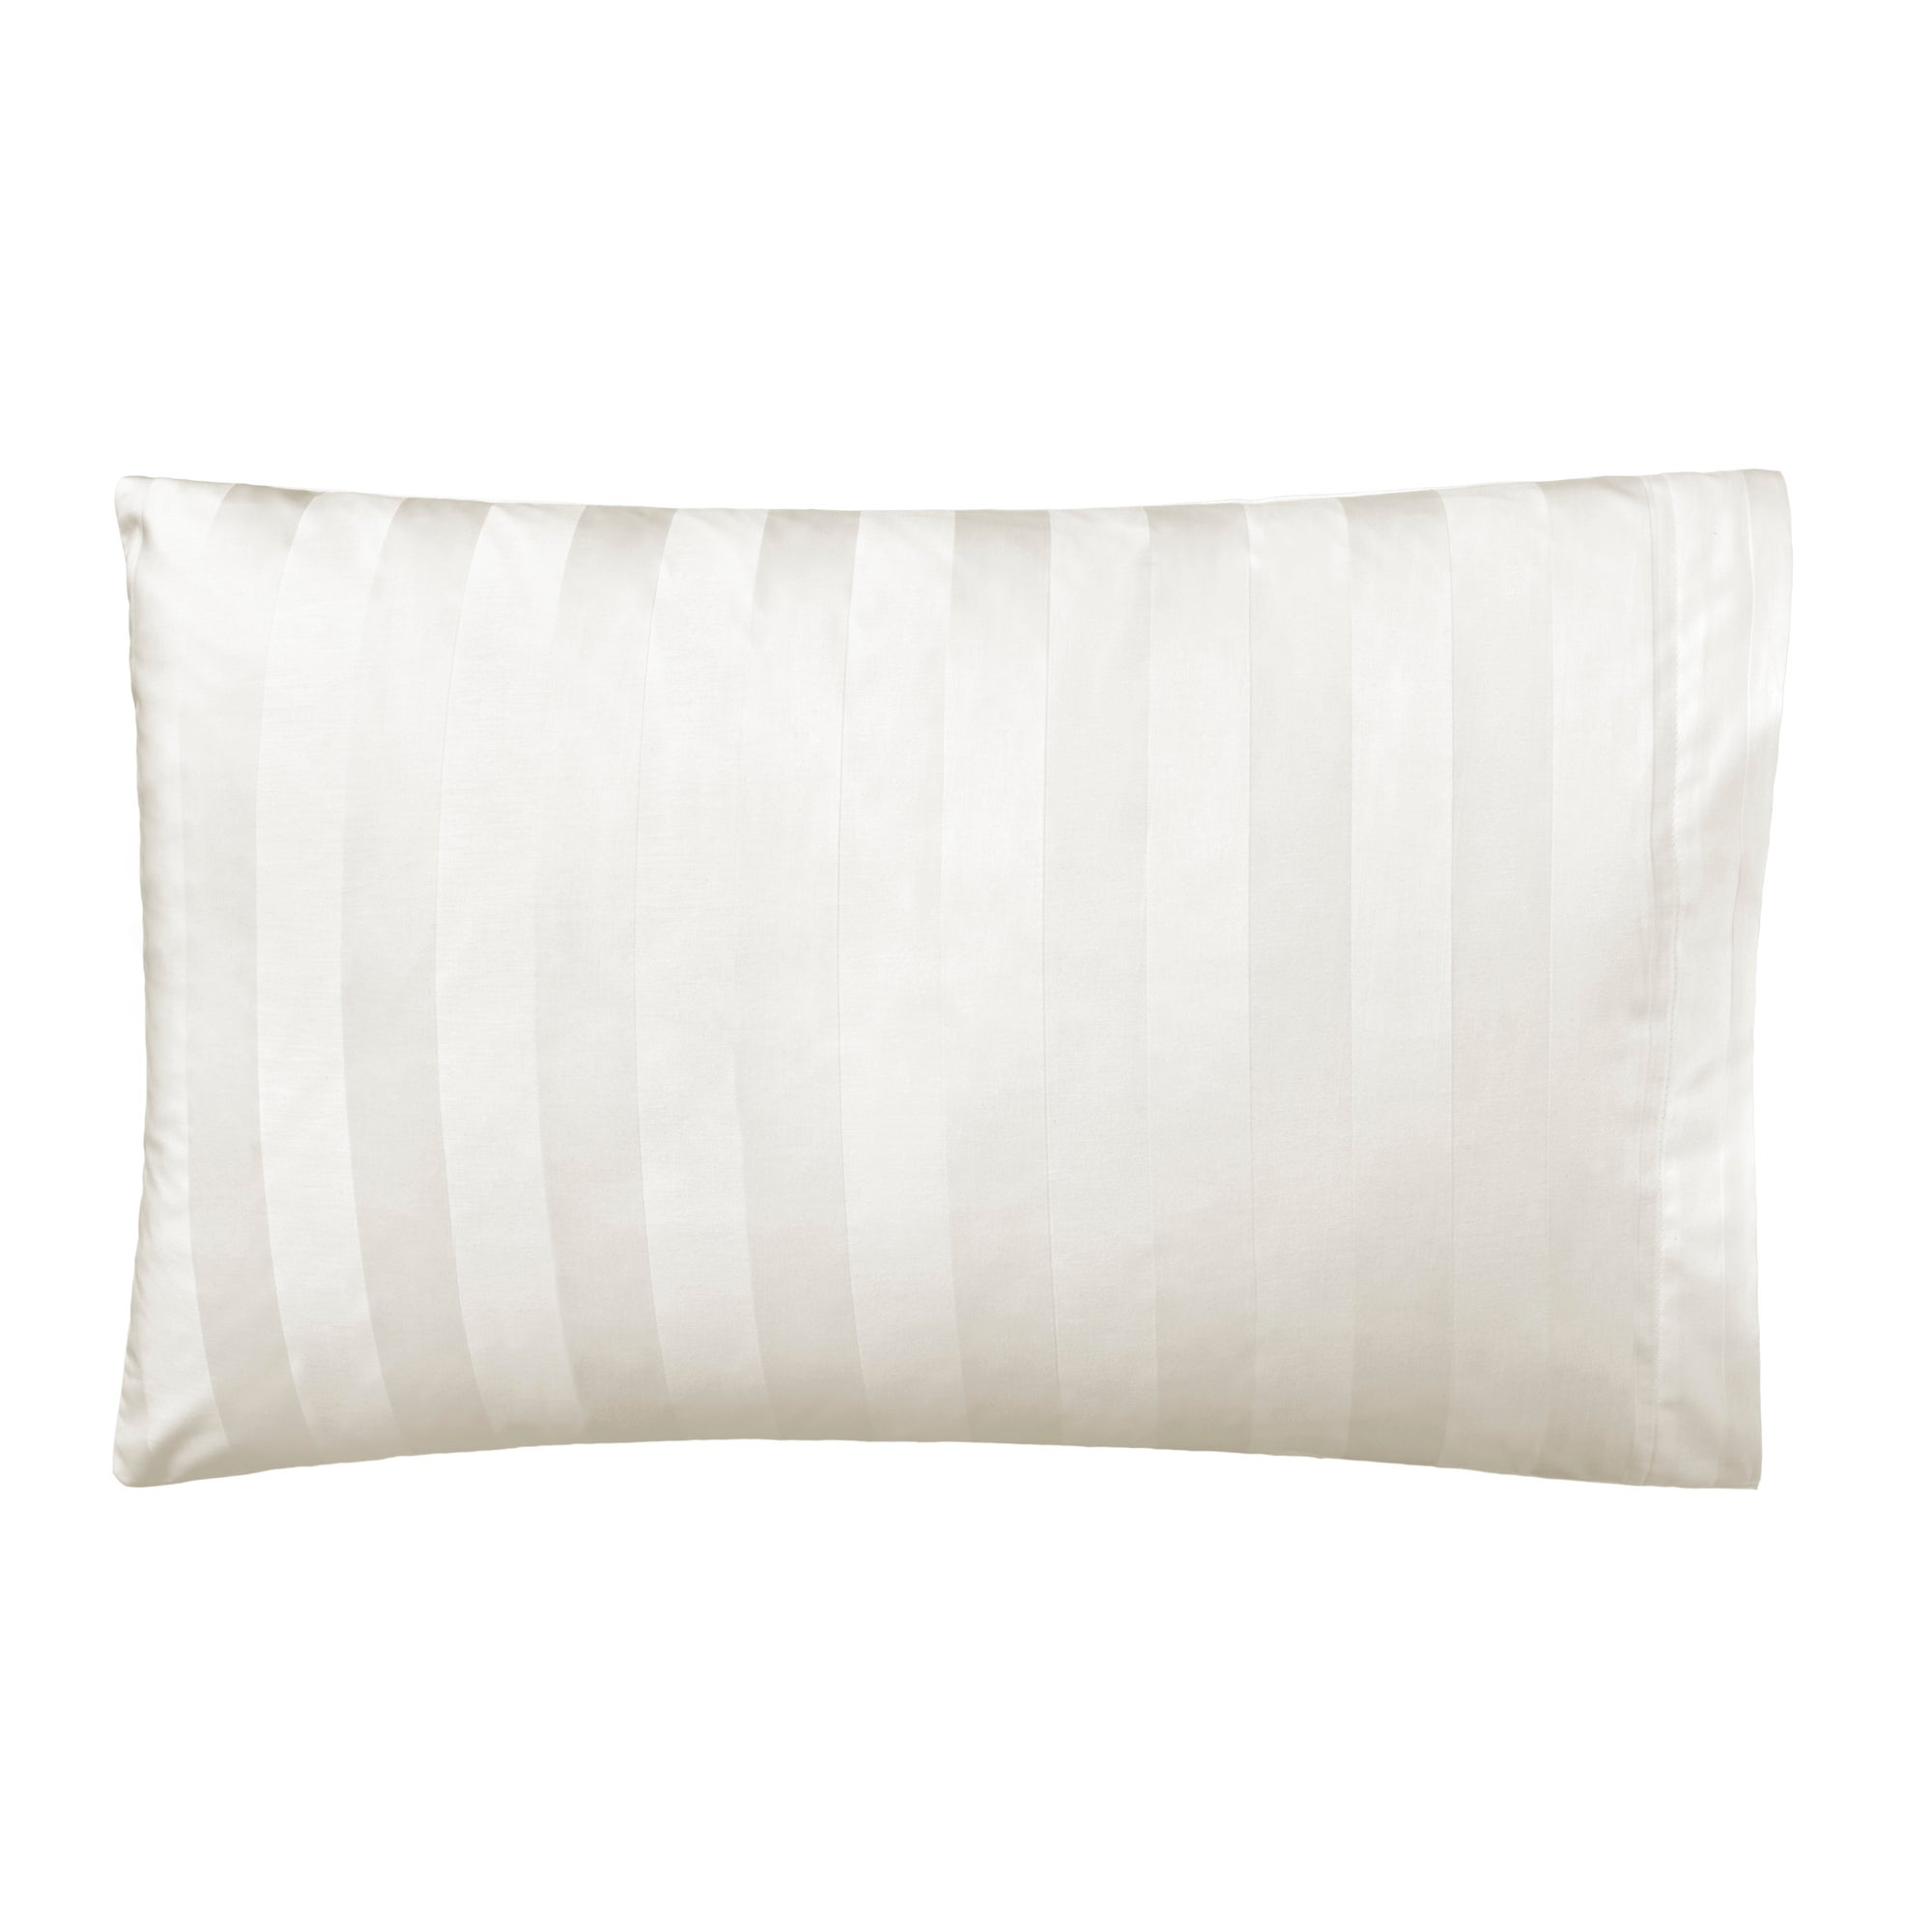 Cream Hotel Stripe 300 Thread Count Collection Housewife Pillowcase